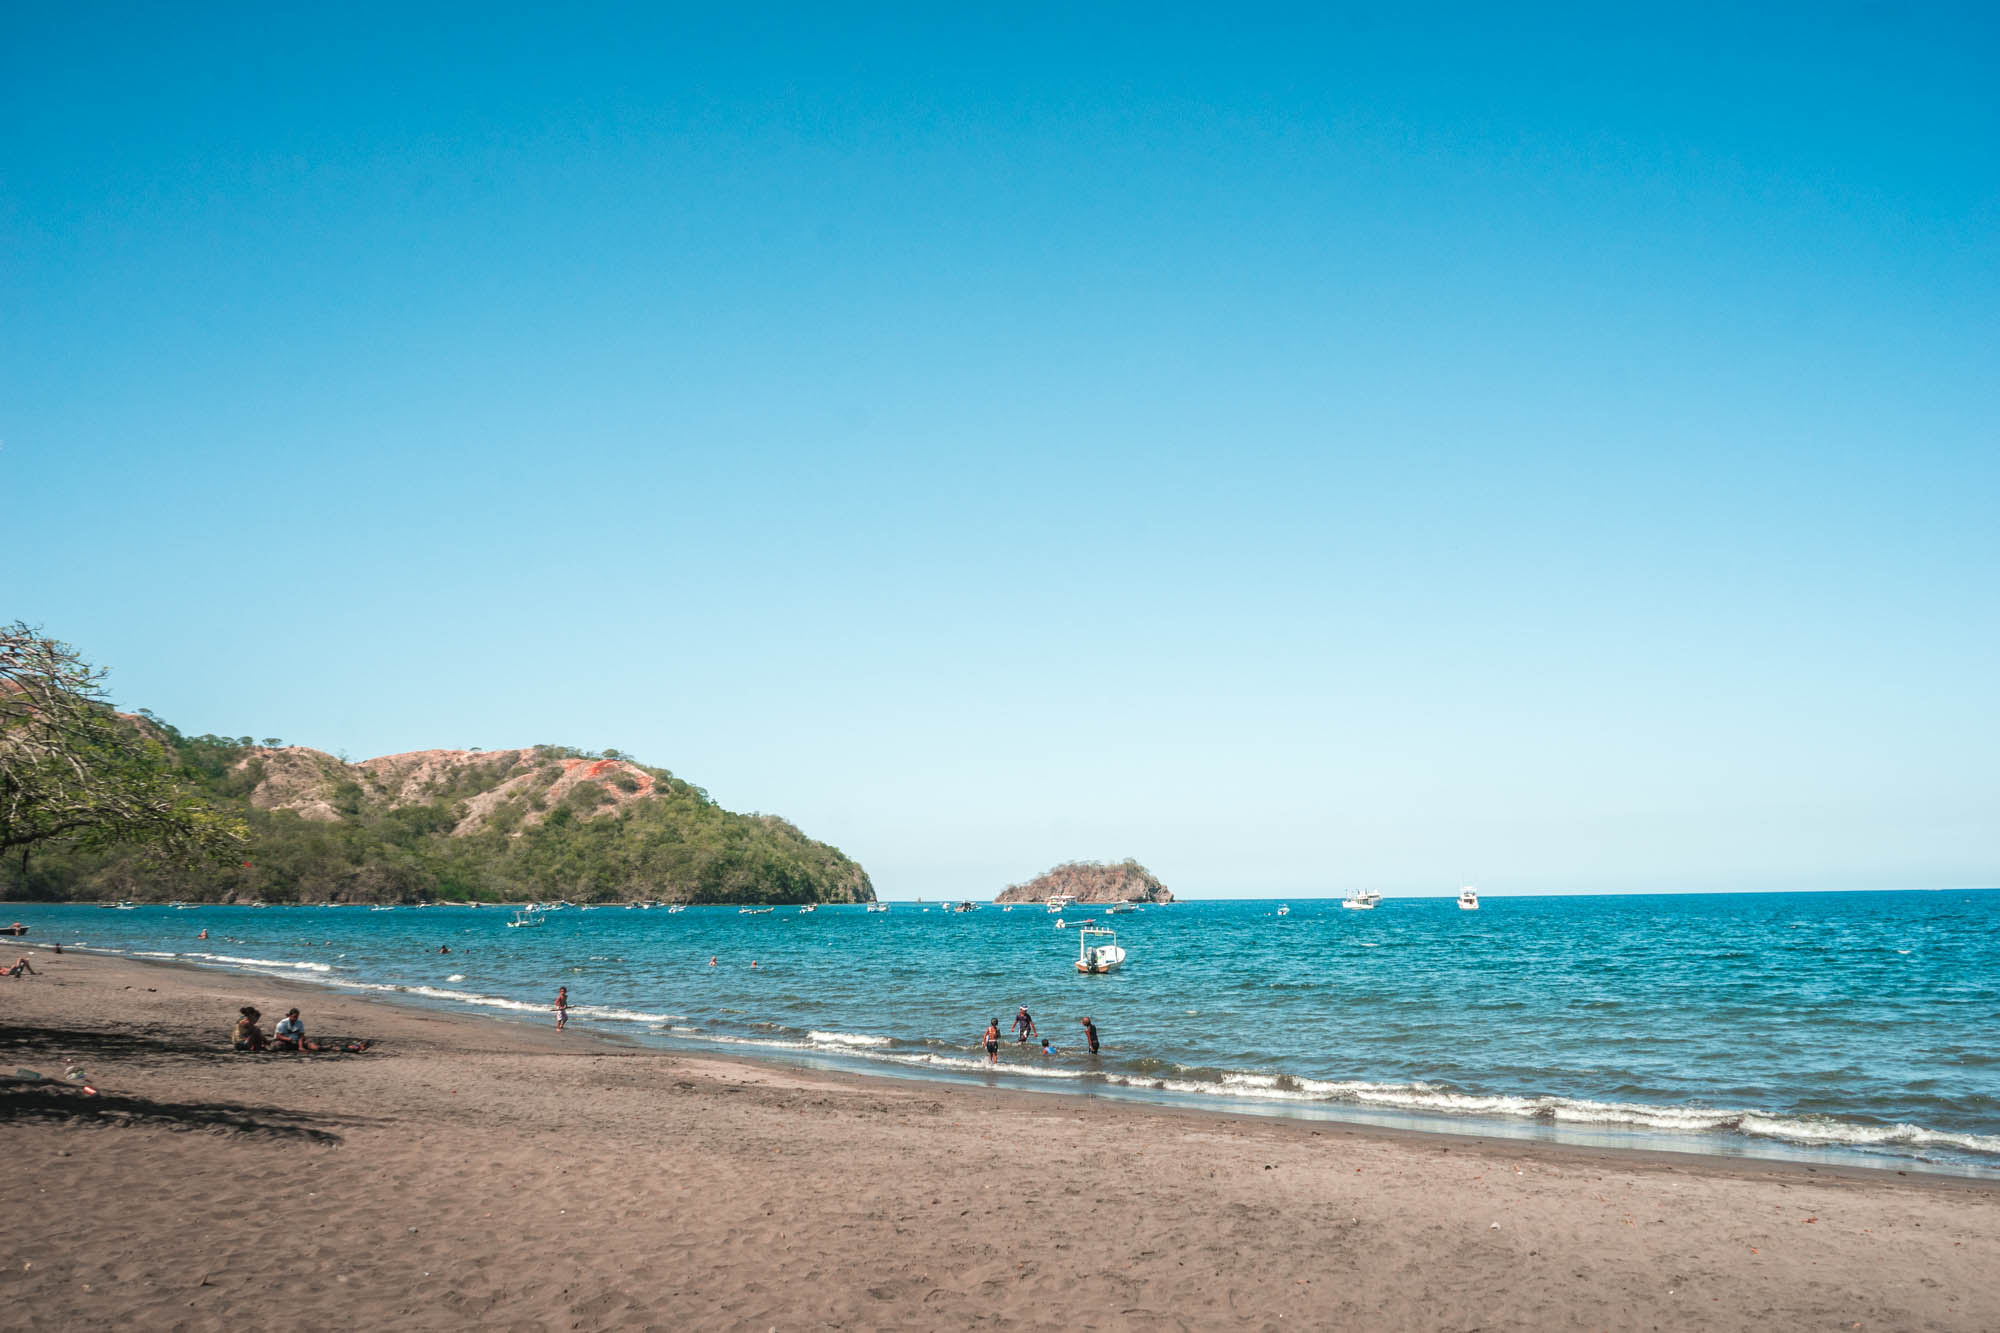 Playa de Coco: one of the best guanacaste costa rica beaches